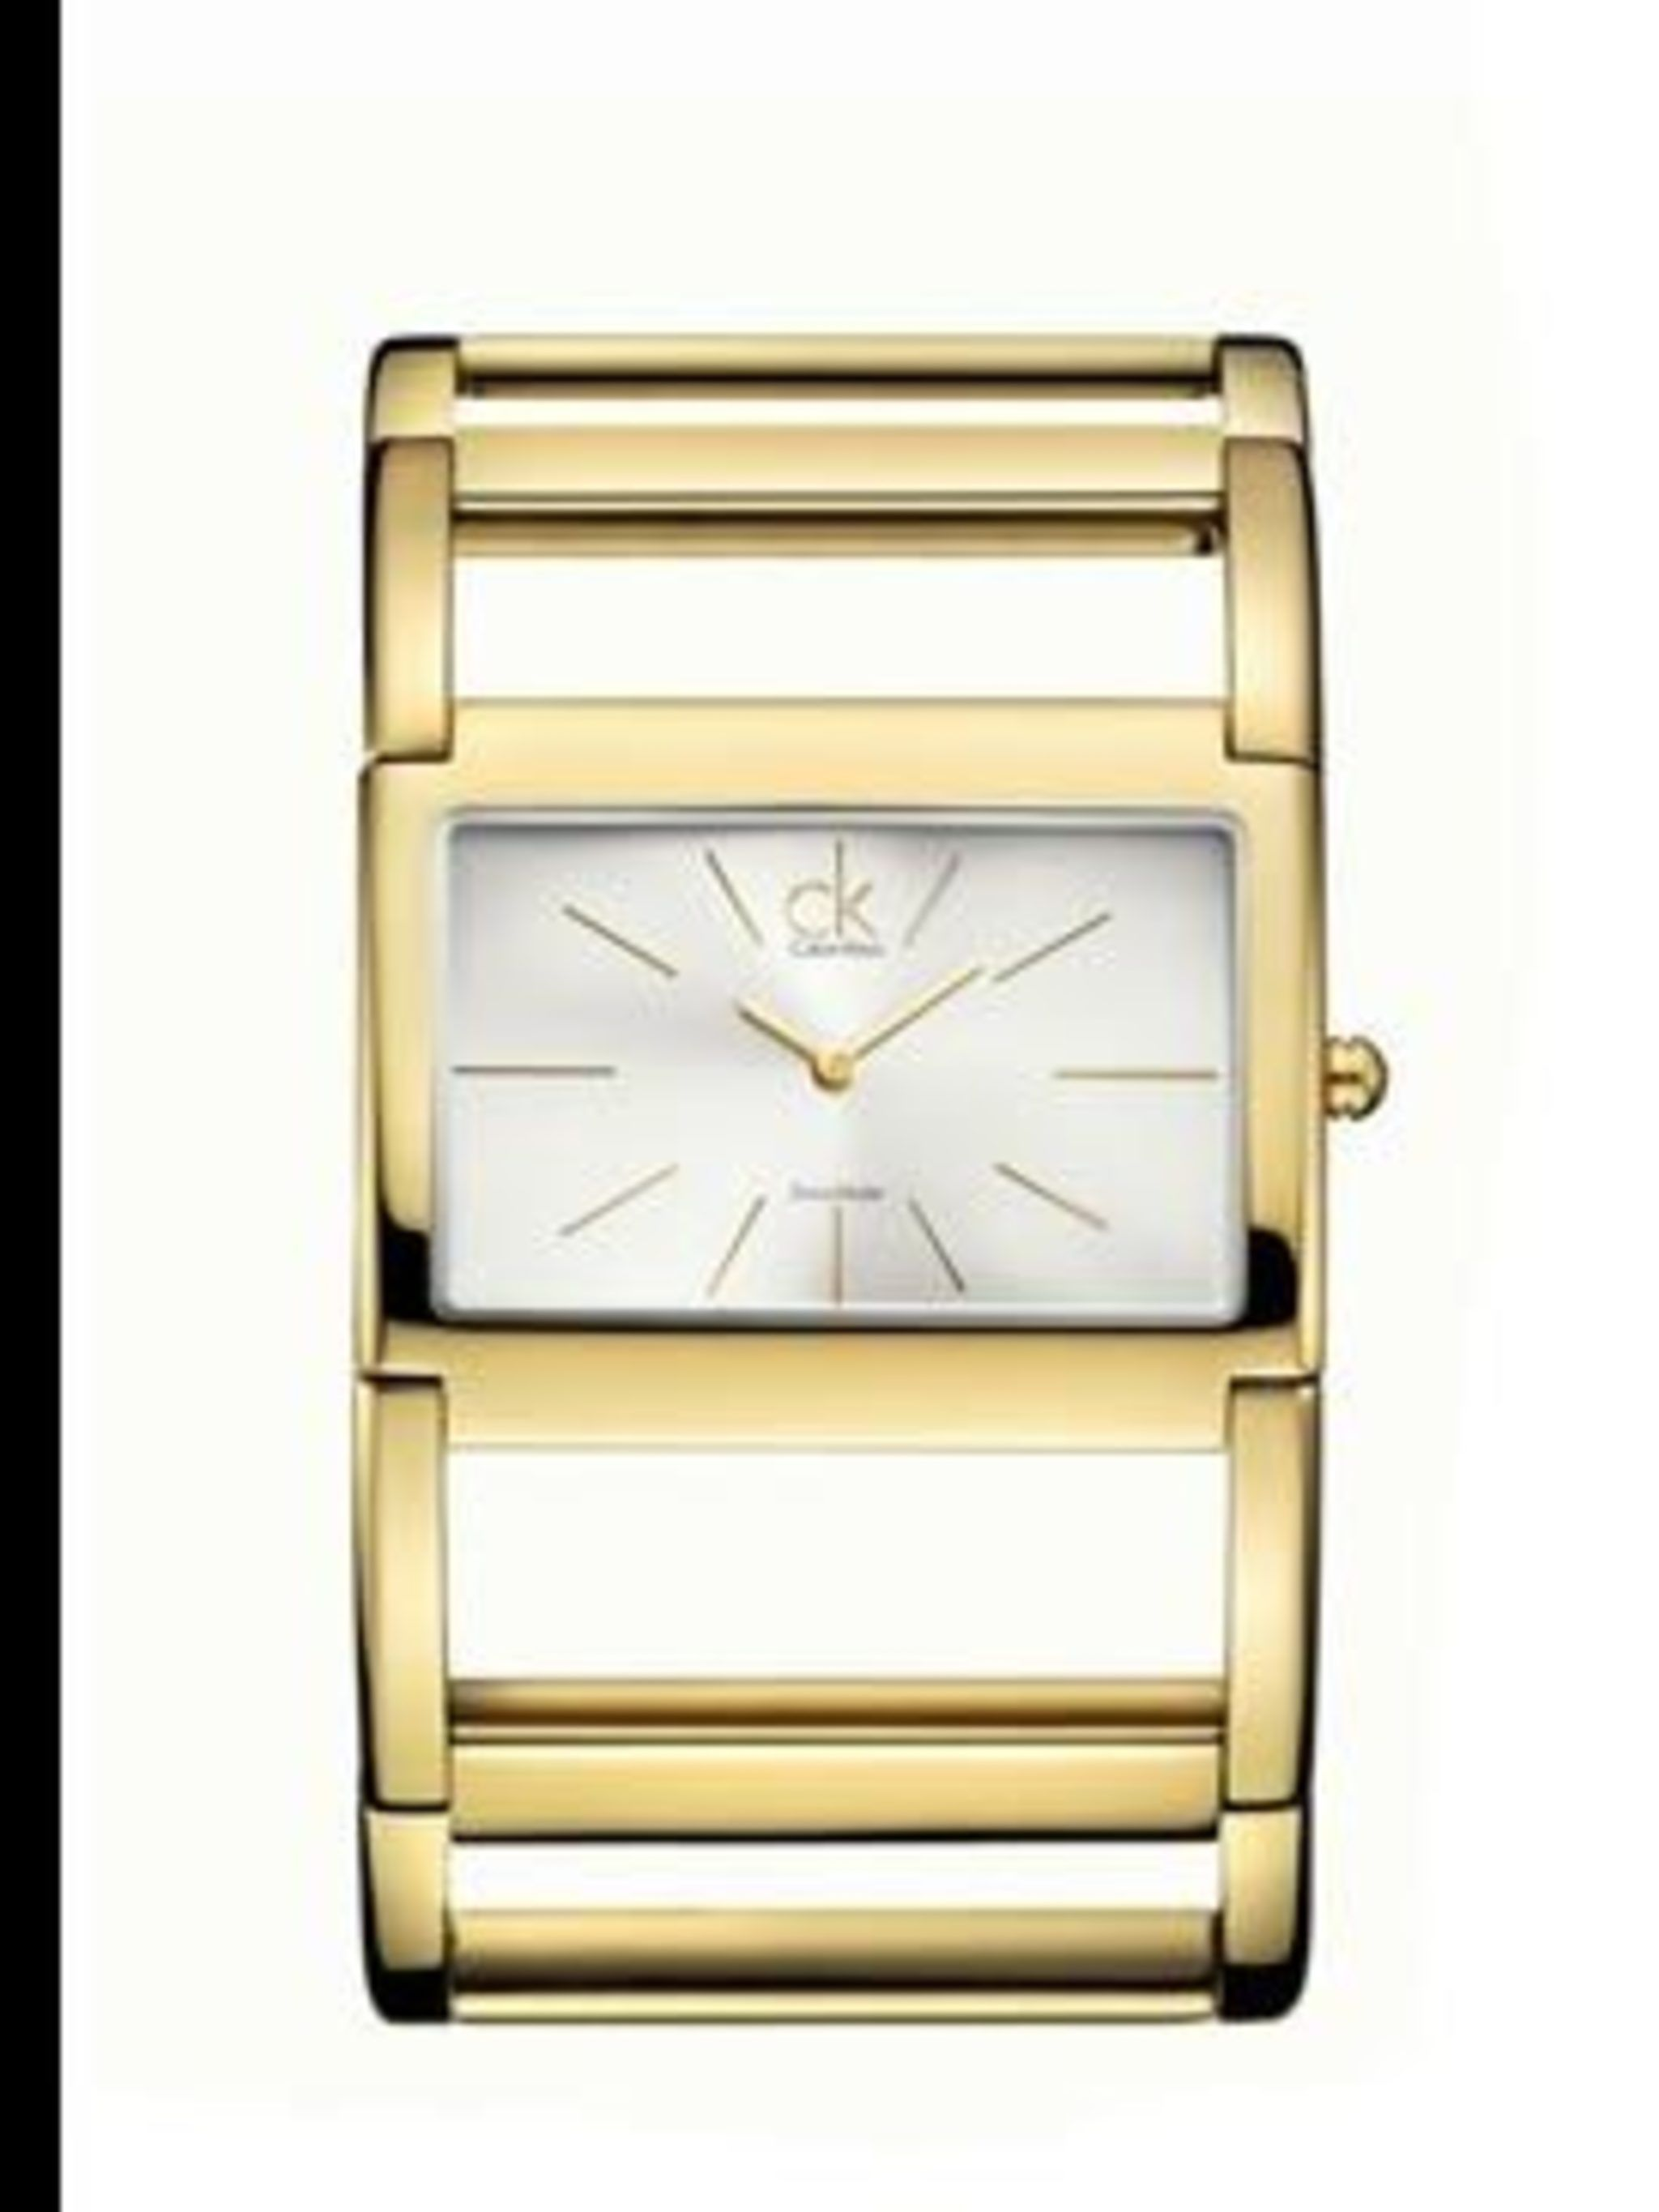 <p>ck New Dress Collection watch, £215, 0845 296 2447</p>